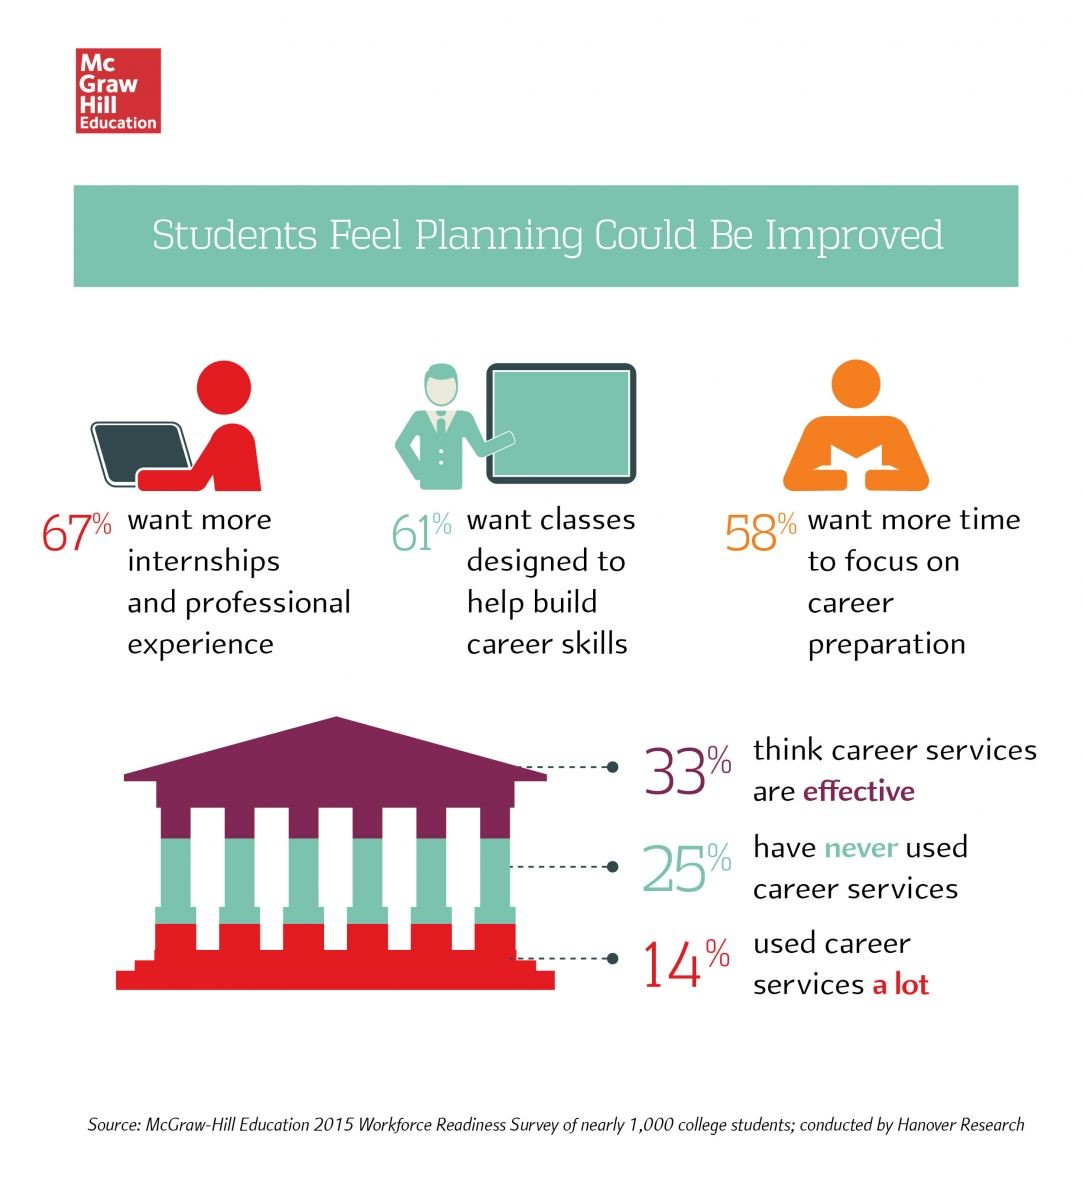 Students feel planning for the transition to the workforce could be improved